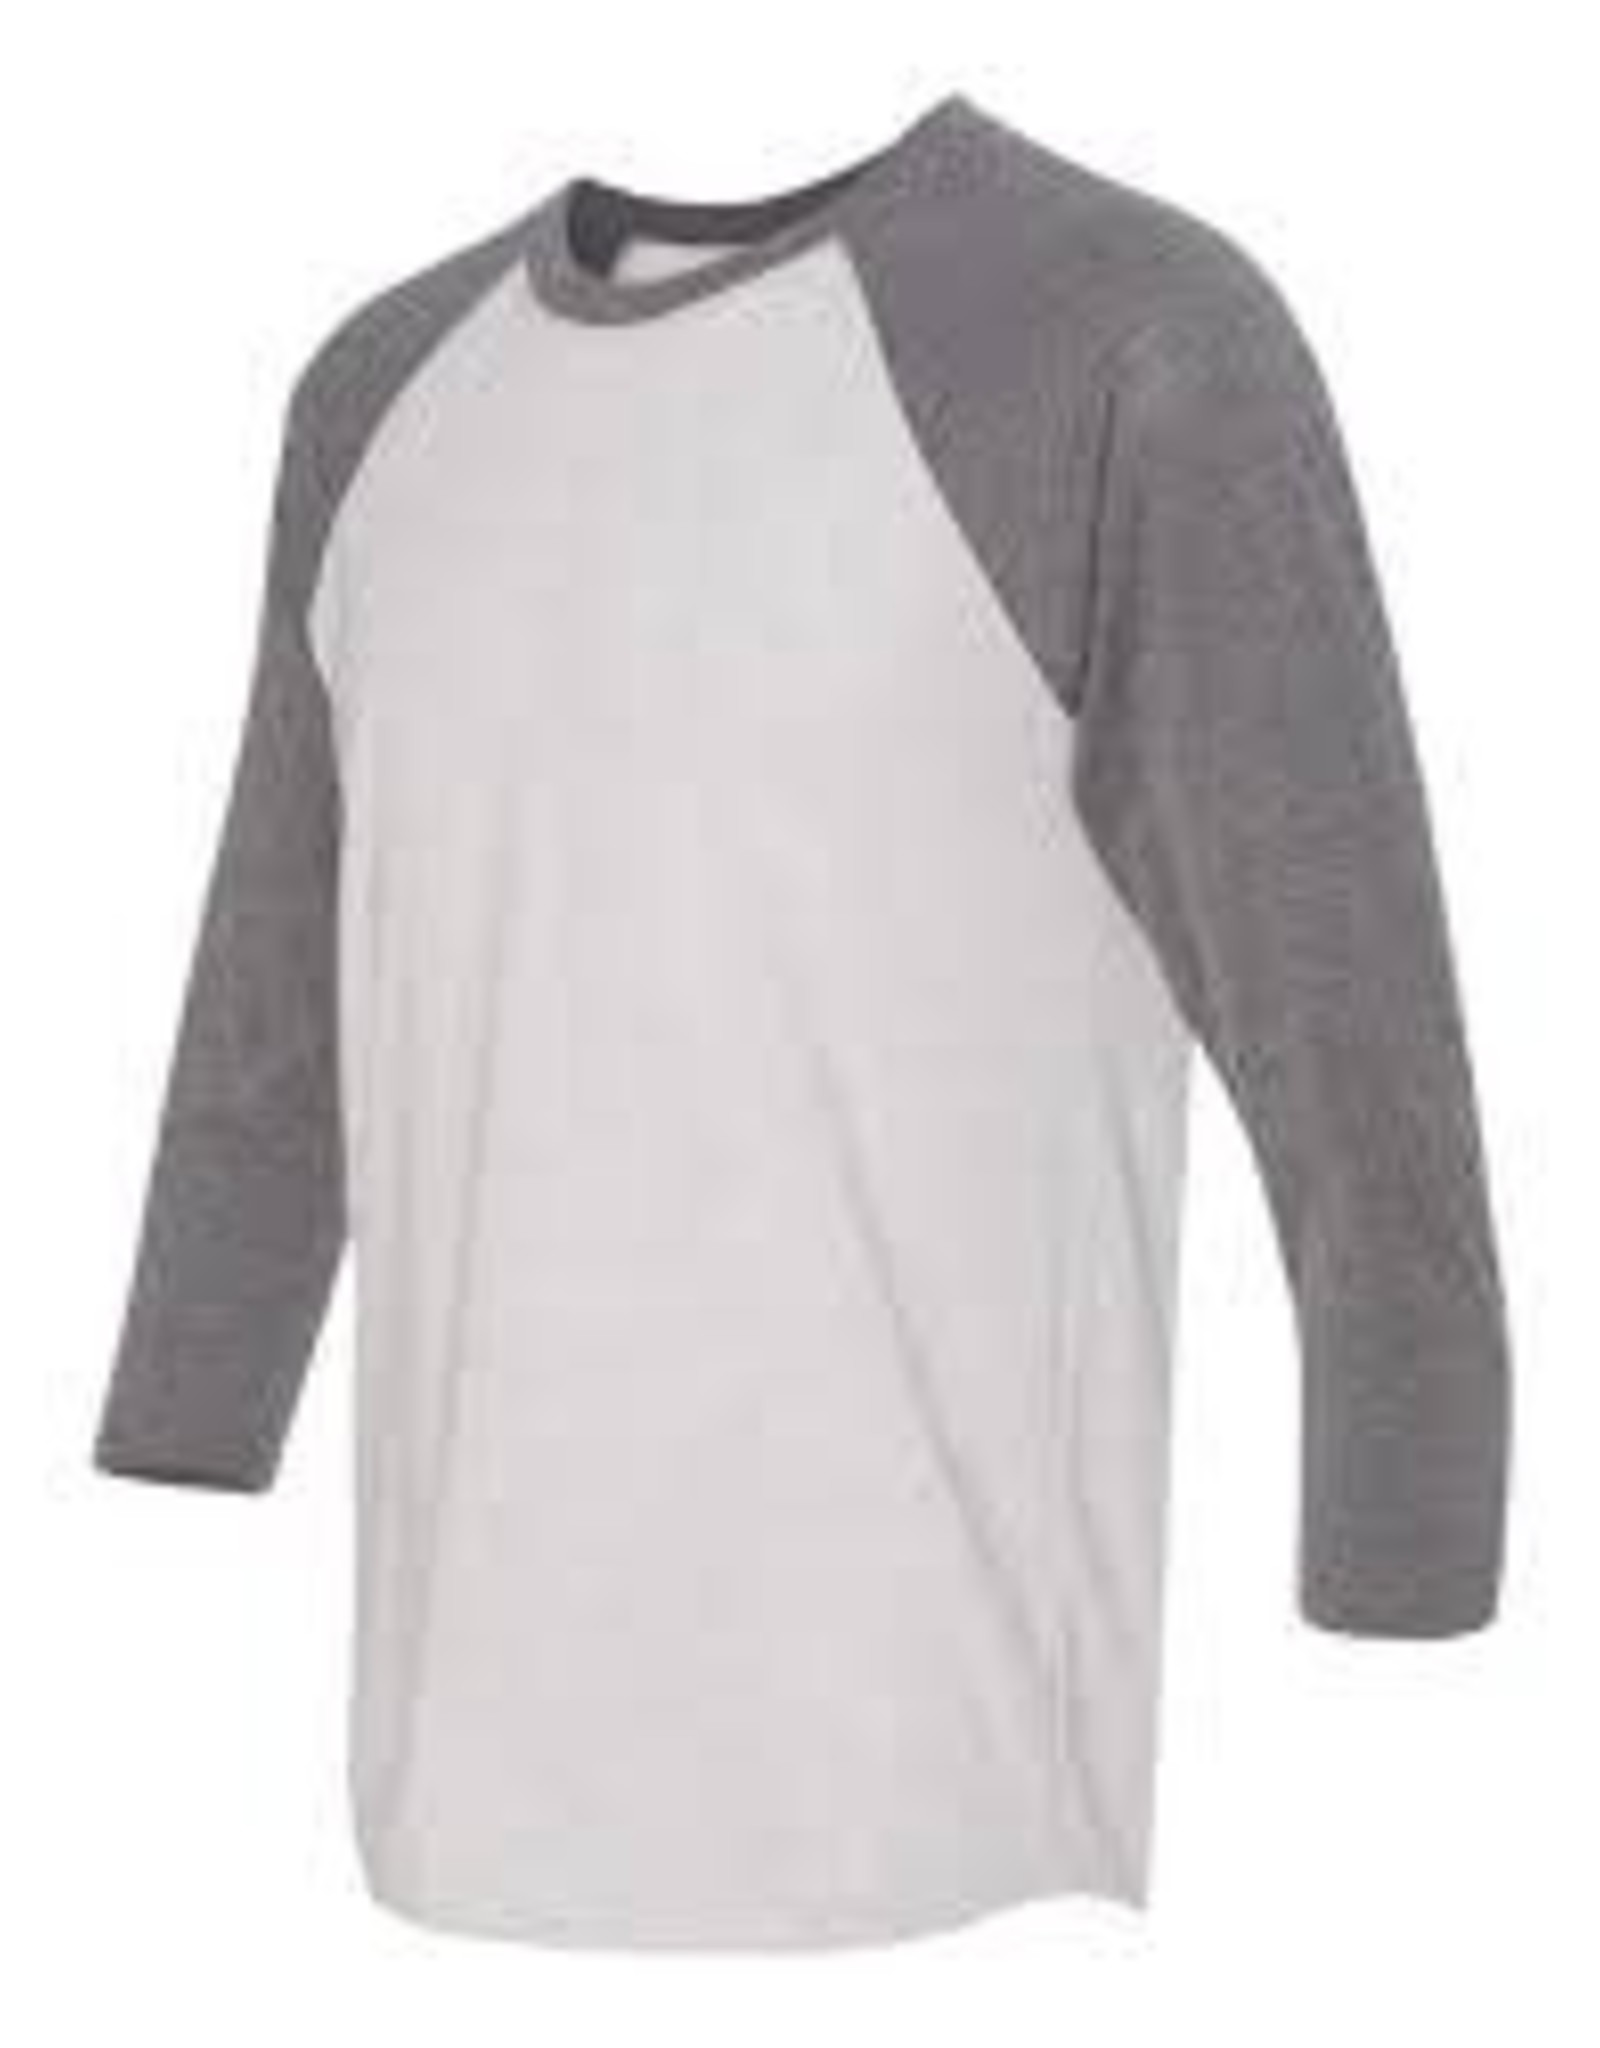 Adult Next Level Raglan